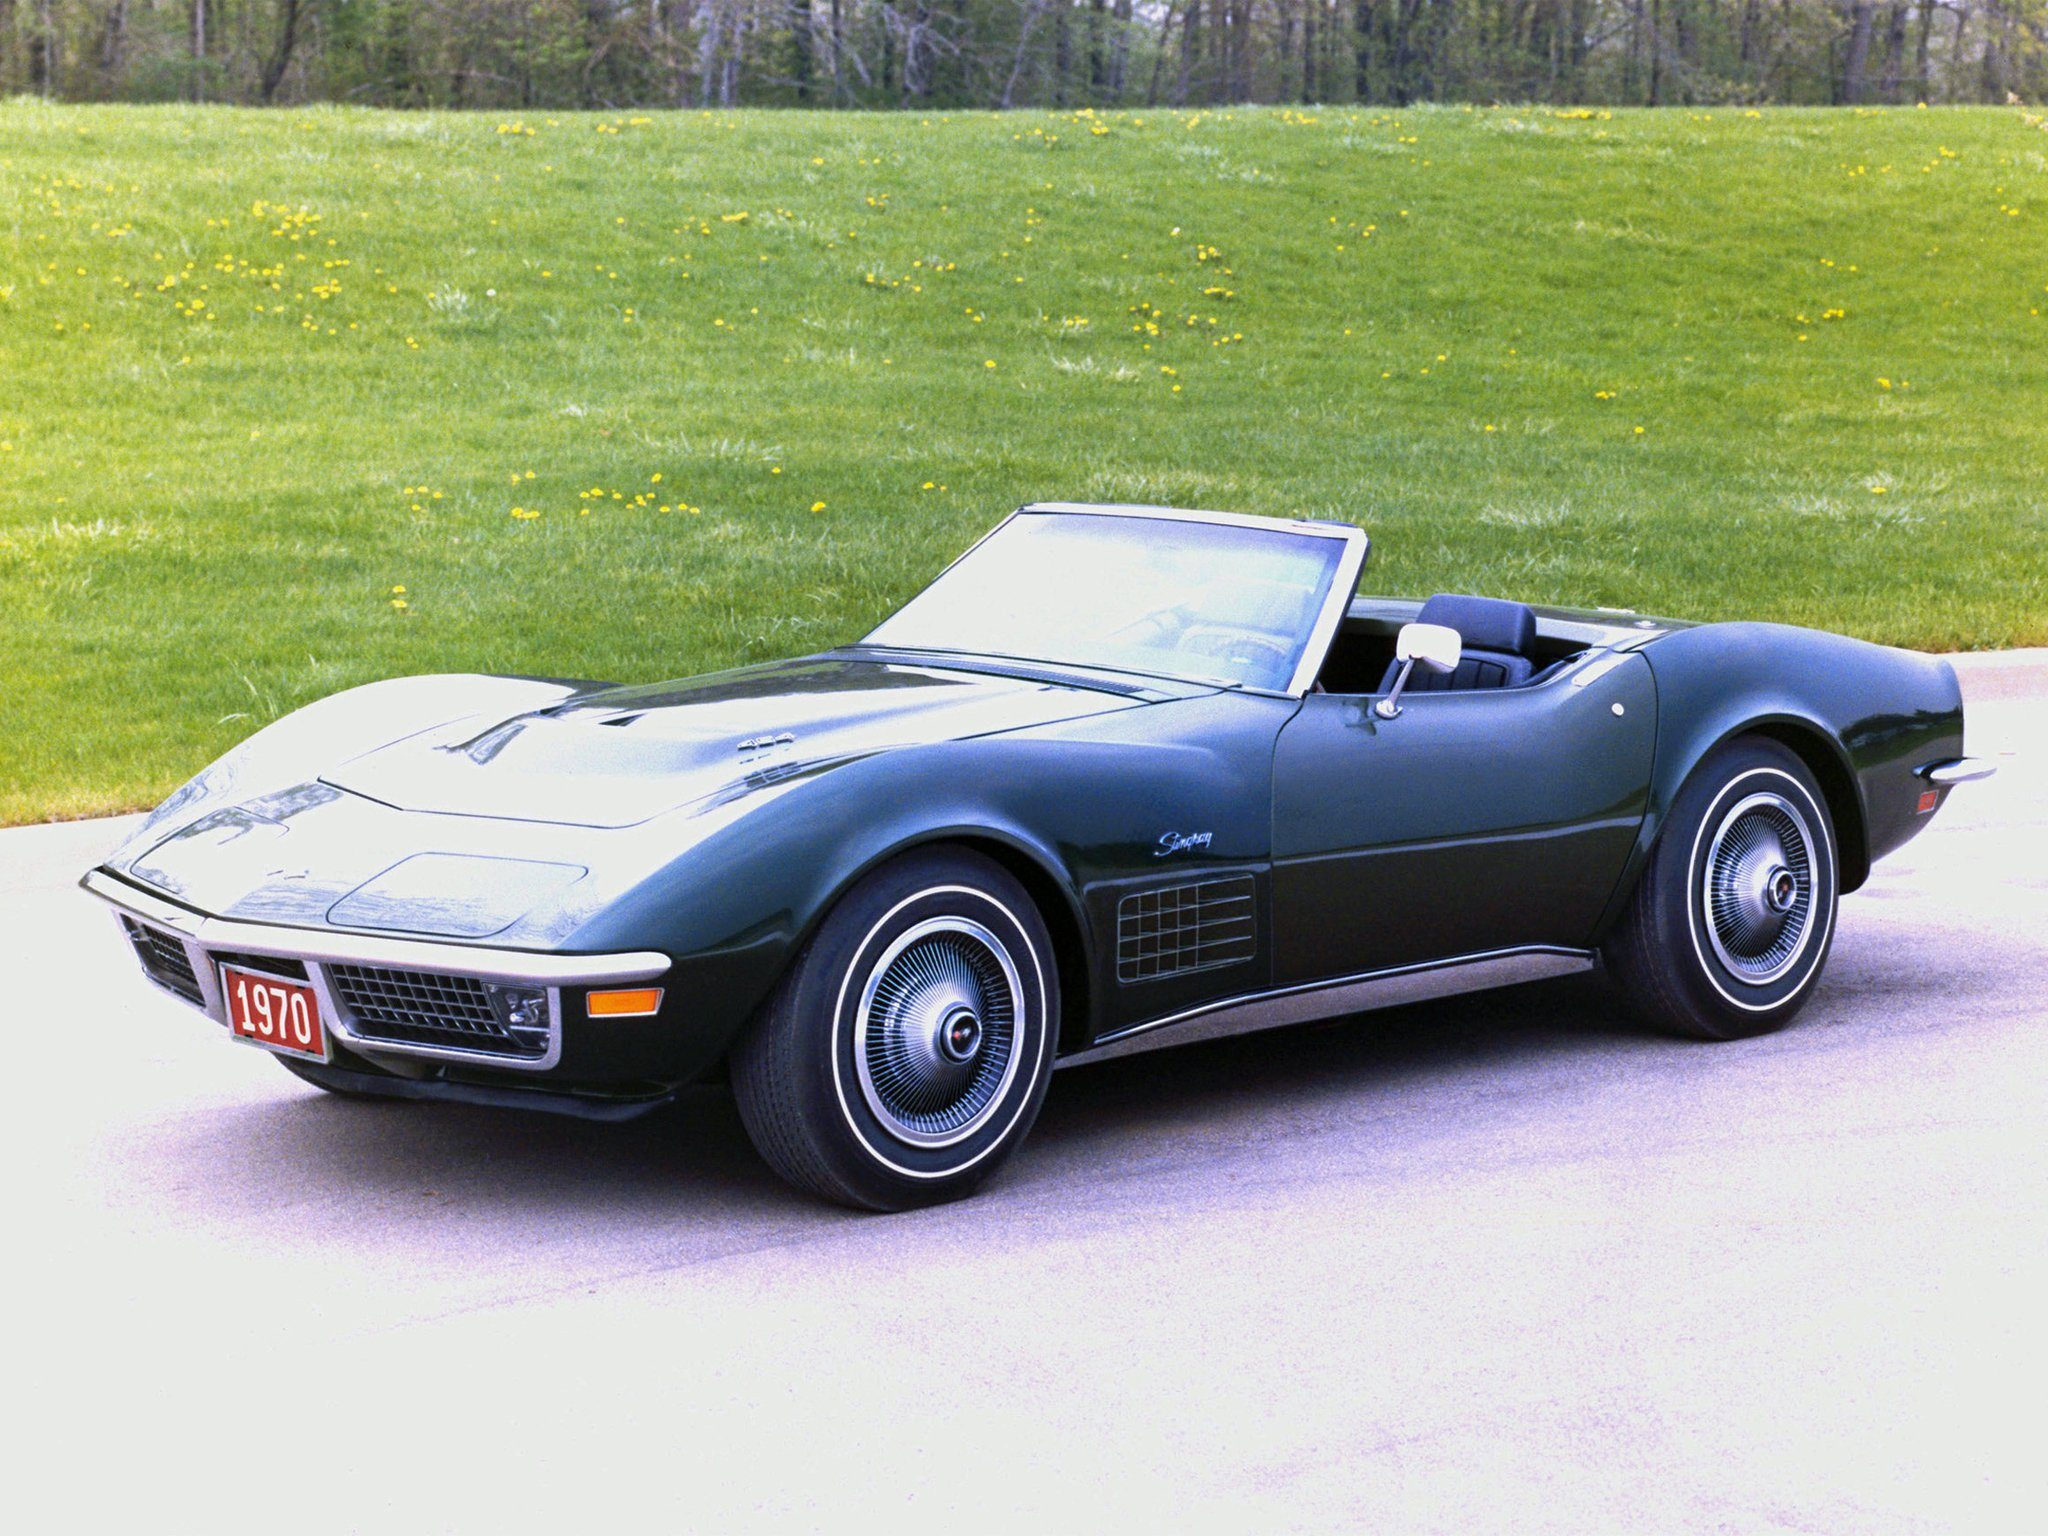 1970 c3 corvette image gallery pictures. Black Bedroom Furniture Sets. Home Design Ideas